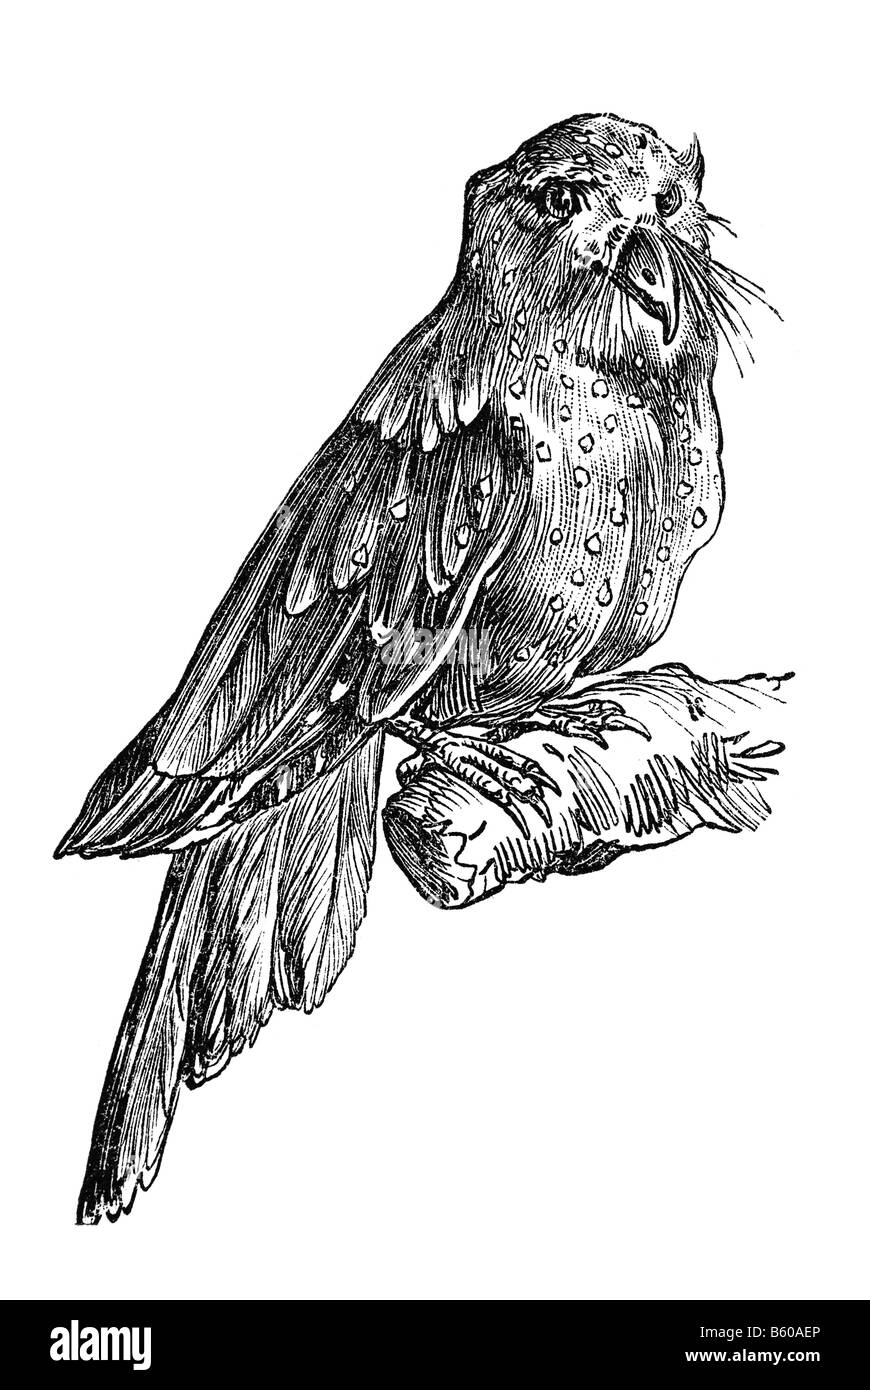 Oilbird (Steatornis caripensis), also known as Guácharo - Stock Image